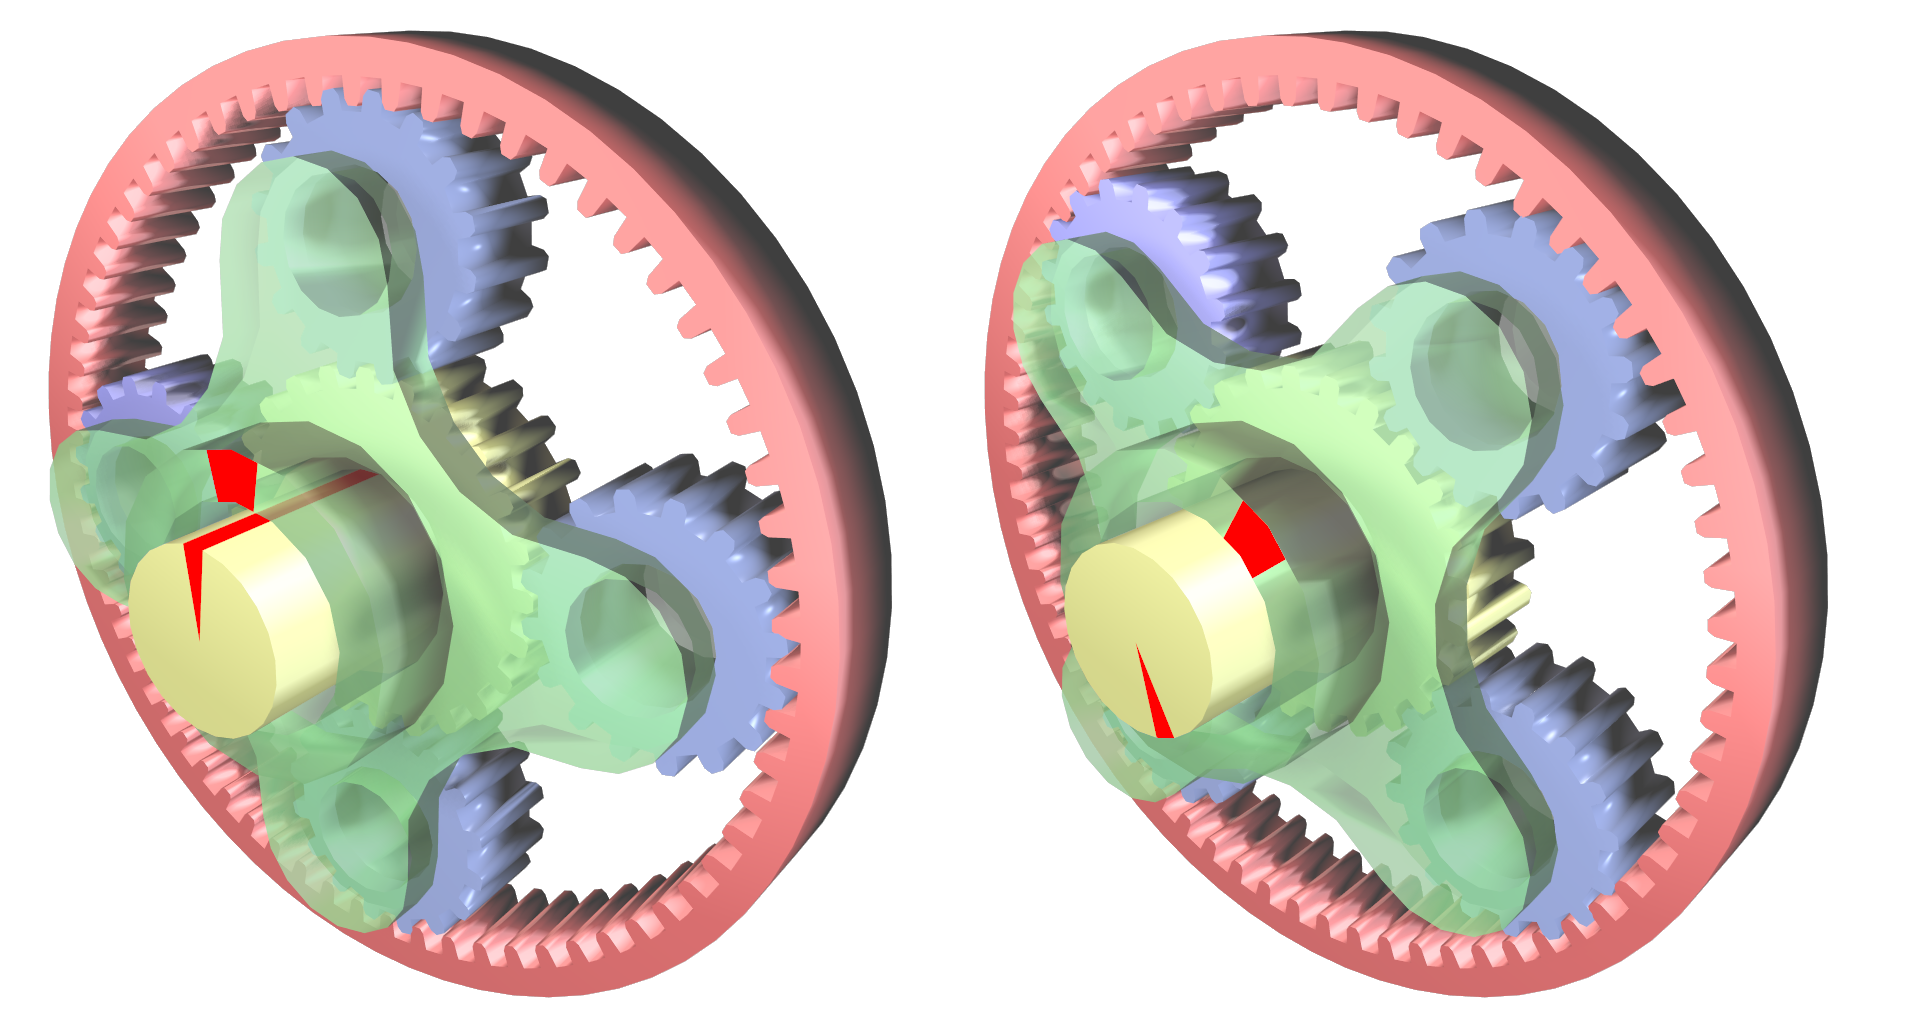 Epicyclic gearing is used here to apportion torque asymmetrically. The input shaft is the green hollow one, the yellow is the low torque output, and the pink is the high torque output. The force applied in the yellow and the pink gears is the same, but since the arm of the pink one is 2 to 3 as big, the torque will be 2 to 3 as high.